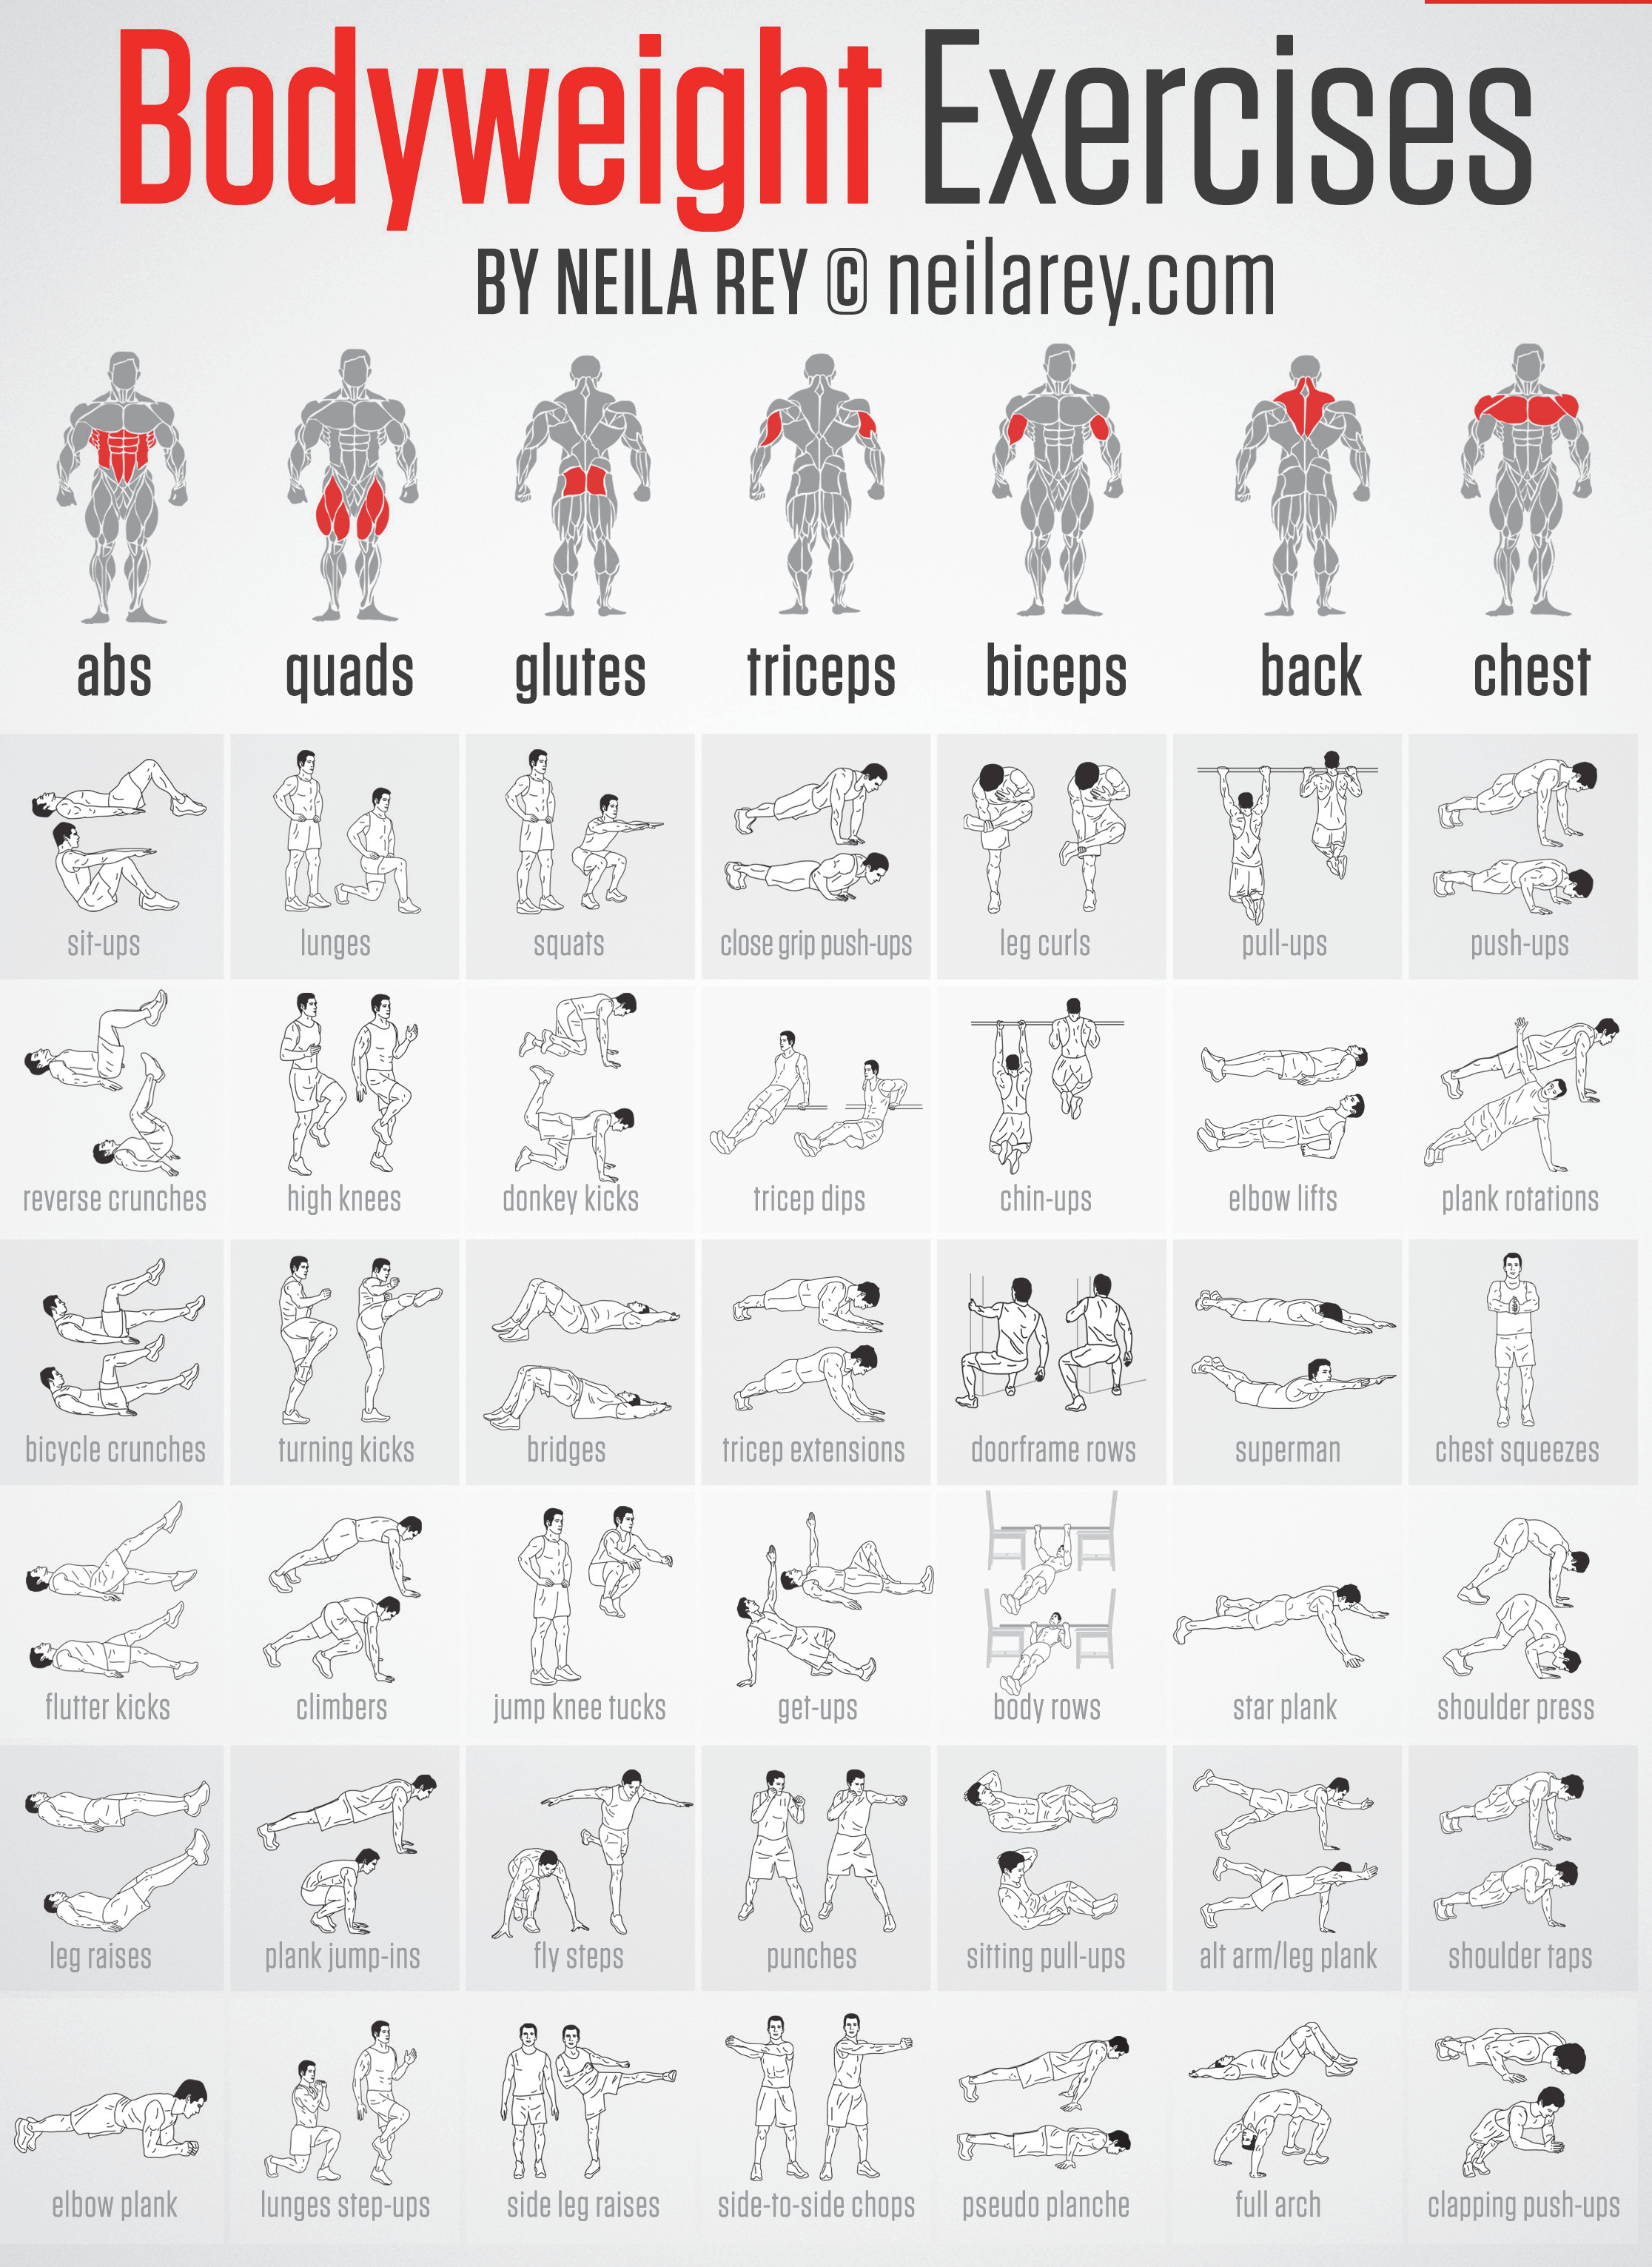 workout board workout belt workout abs workout exercises weight exercises fit [ 2232 x 3062 Pixel ]